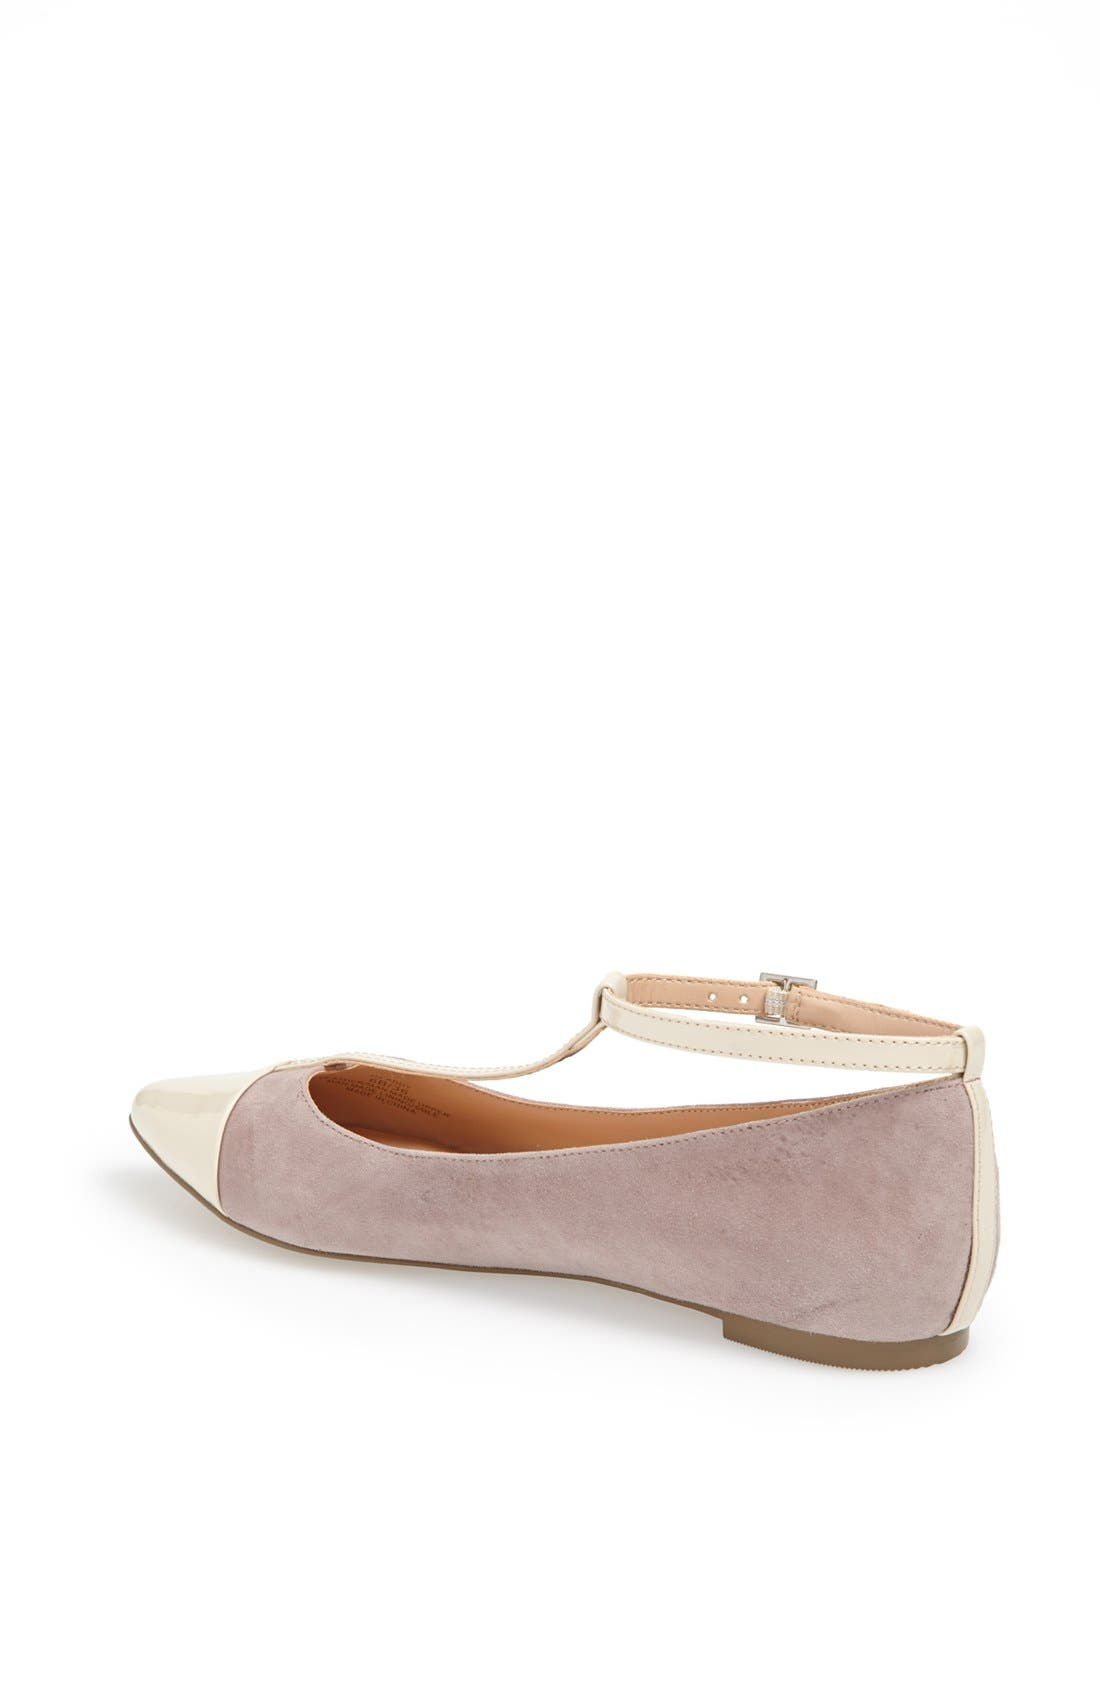 ,                             Julianne Hough for Sole Society 'Addy' Flat,                             Alternate thumbnail 8, color,                             060